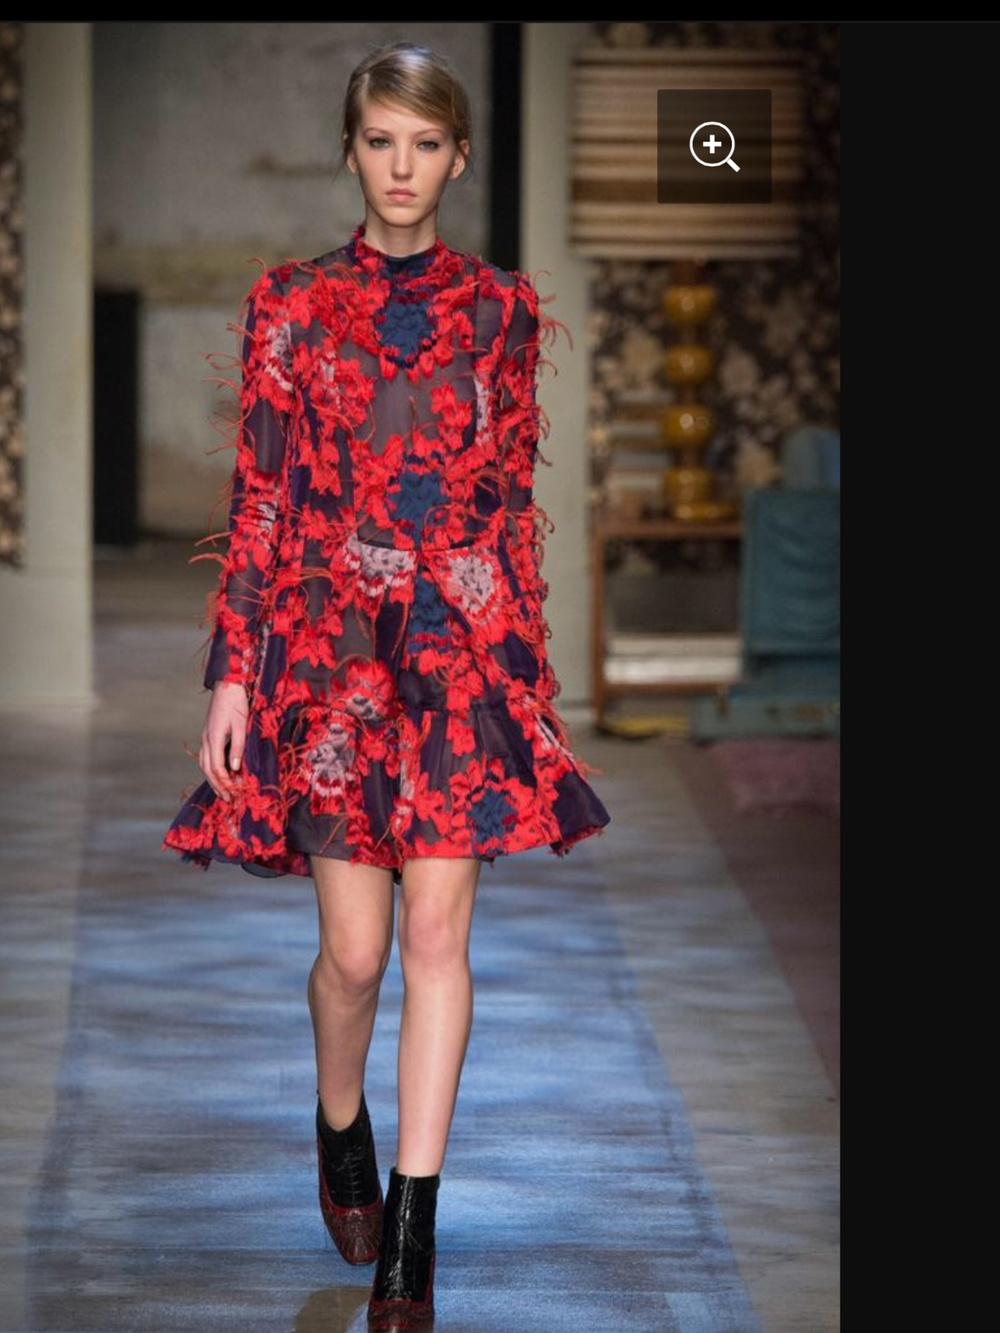 Fashion Designer Erdem on the catwalk